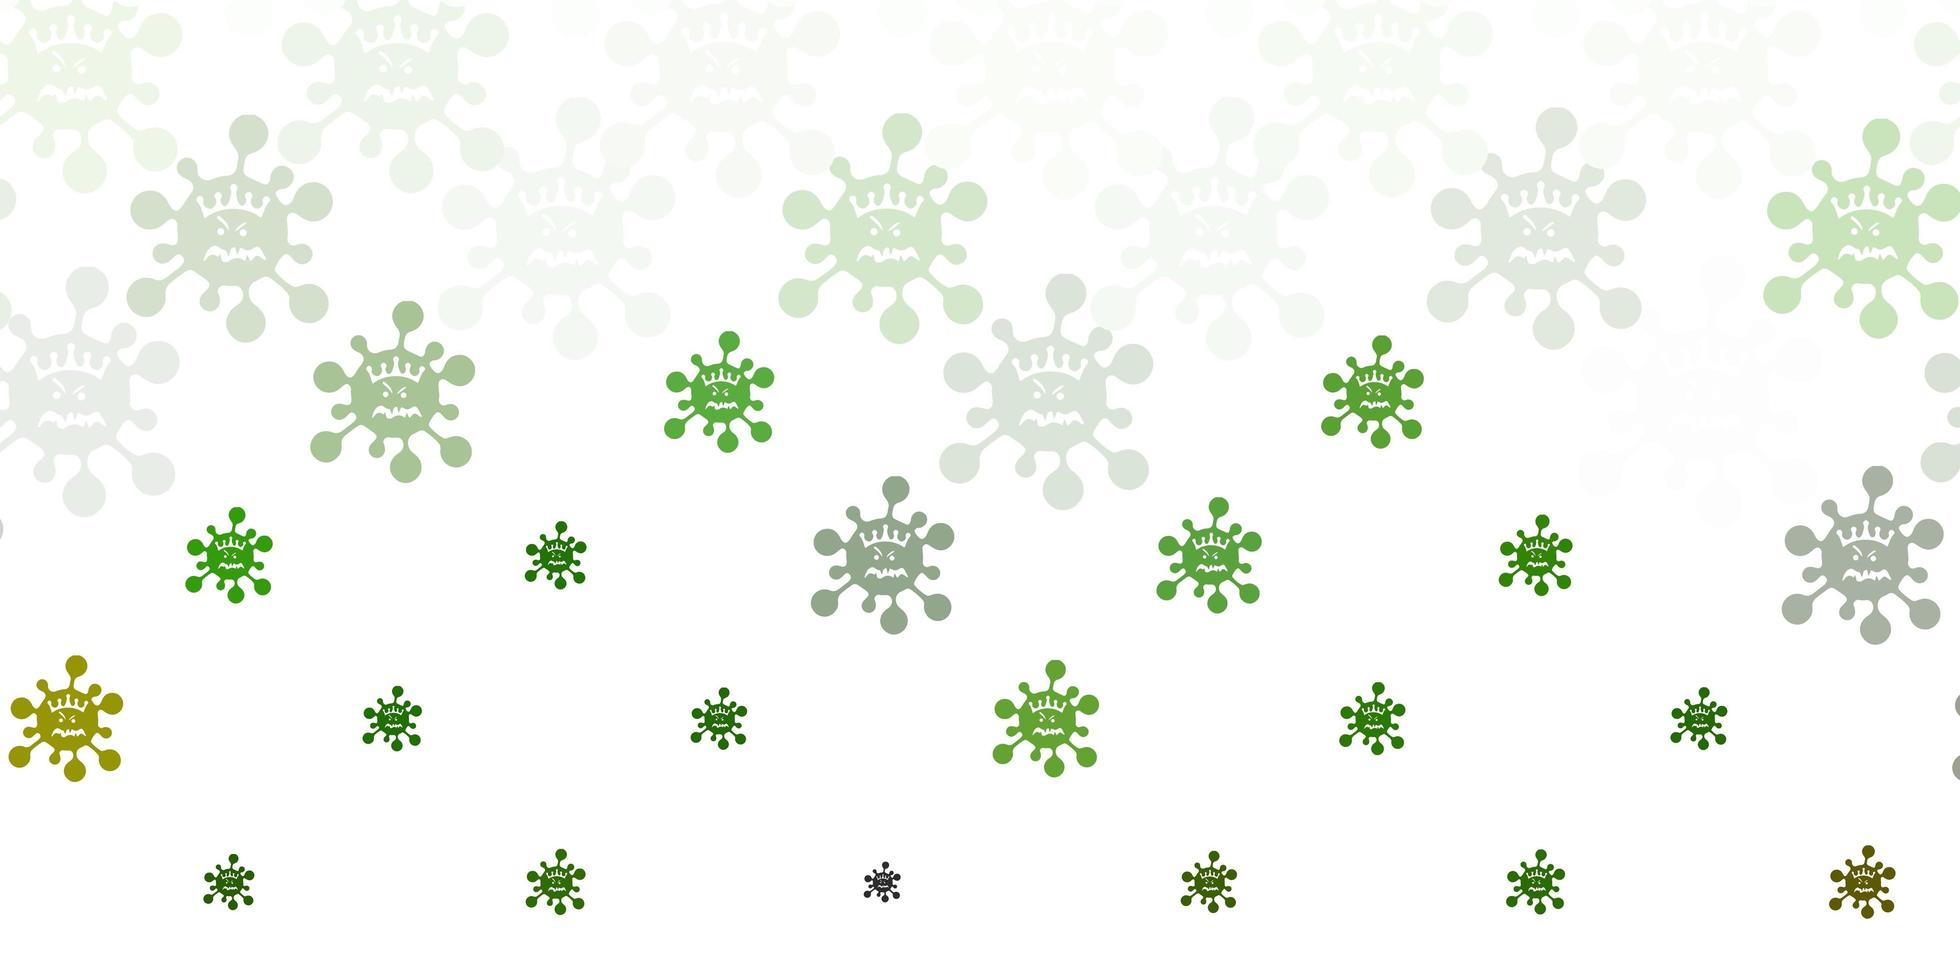 Light Green vector background with covid-19 symbols